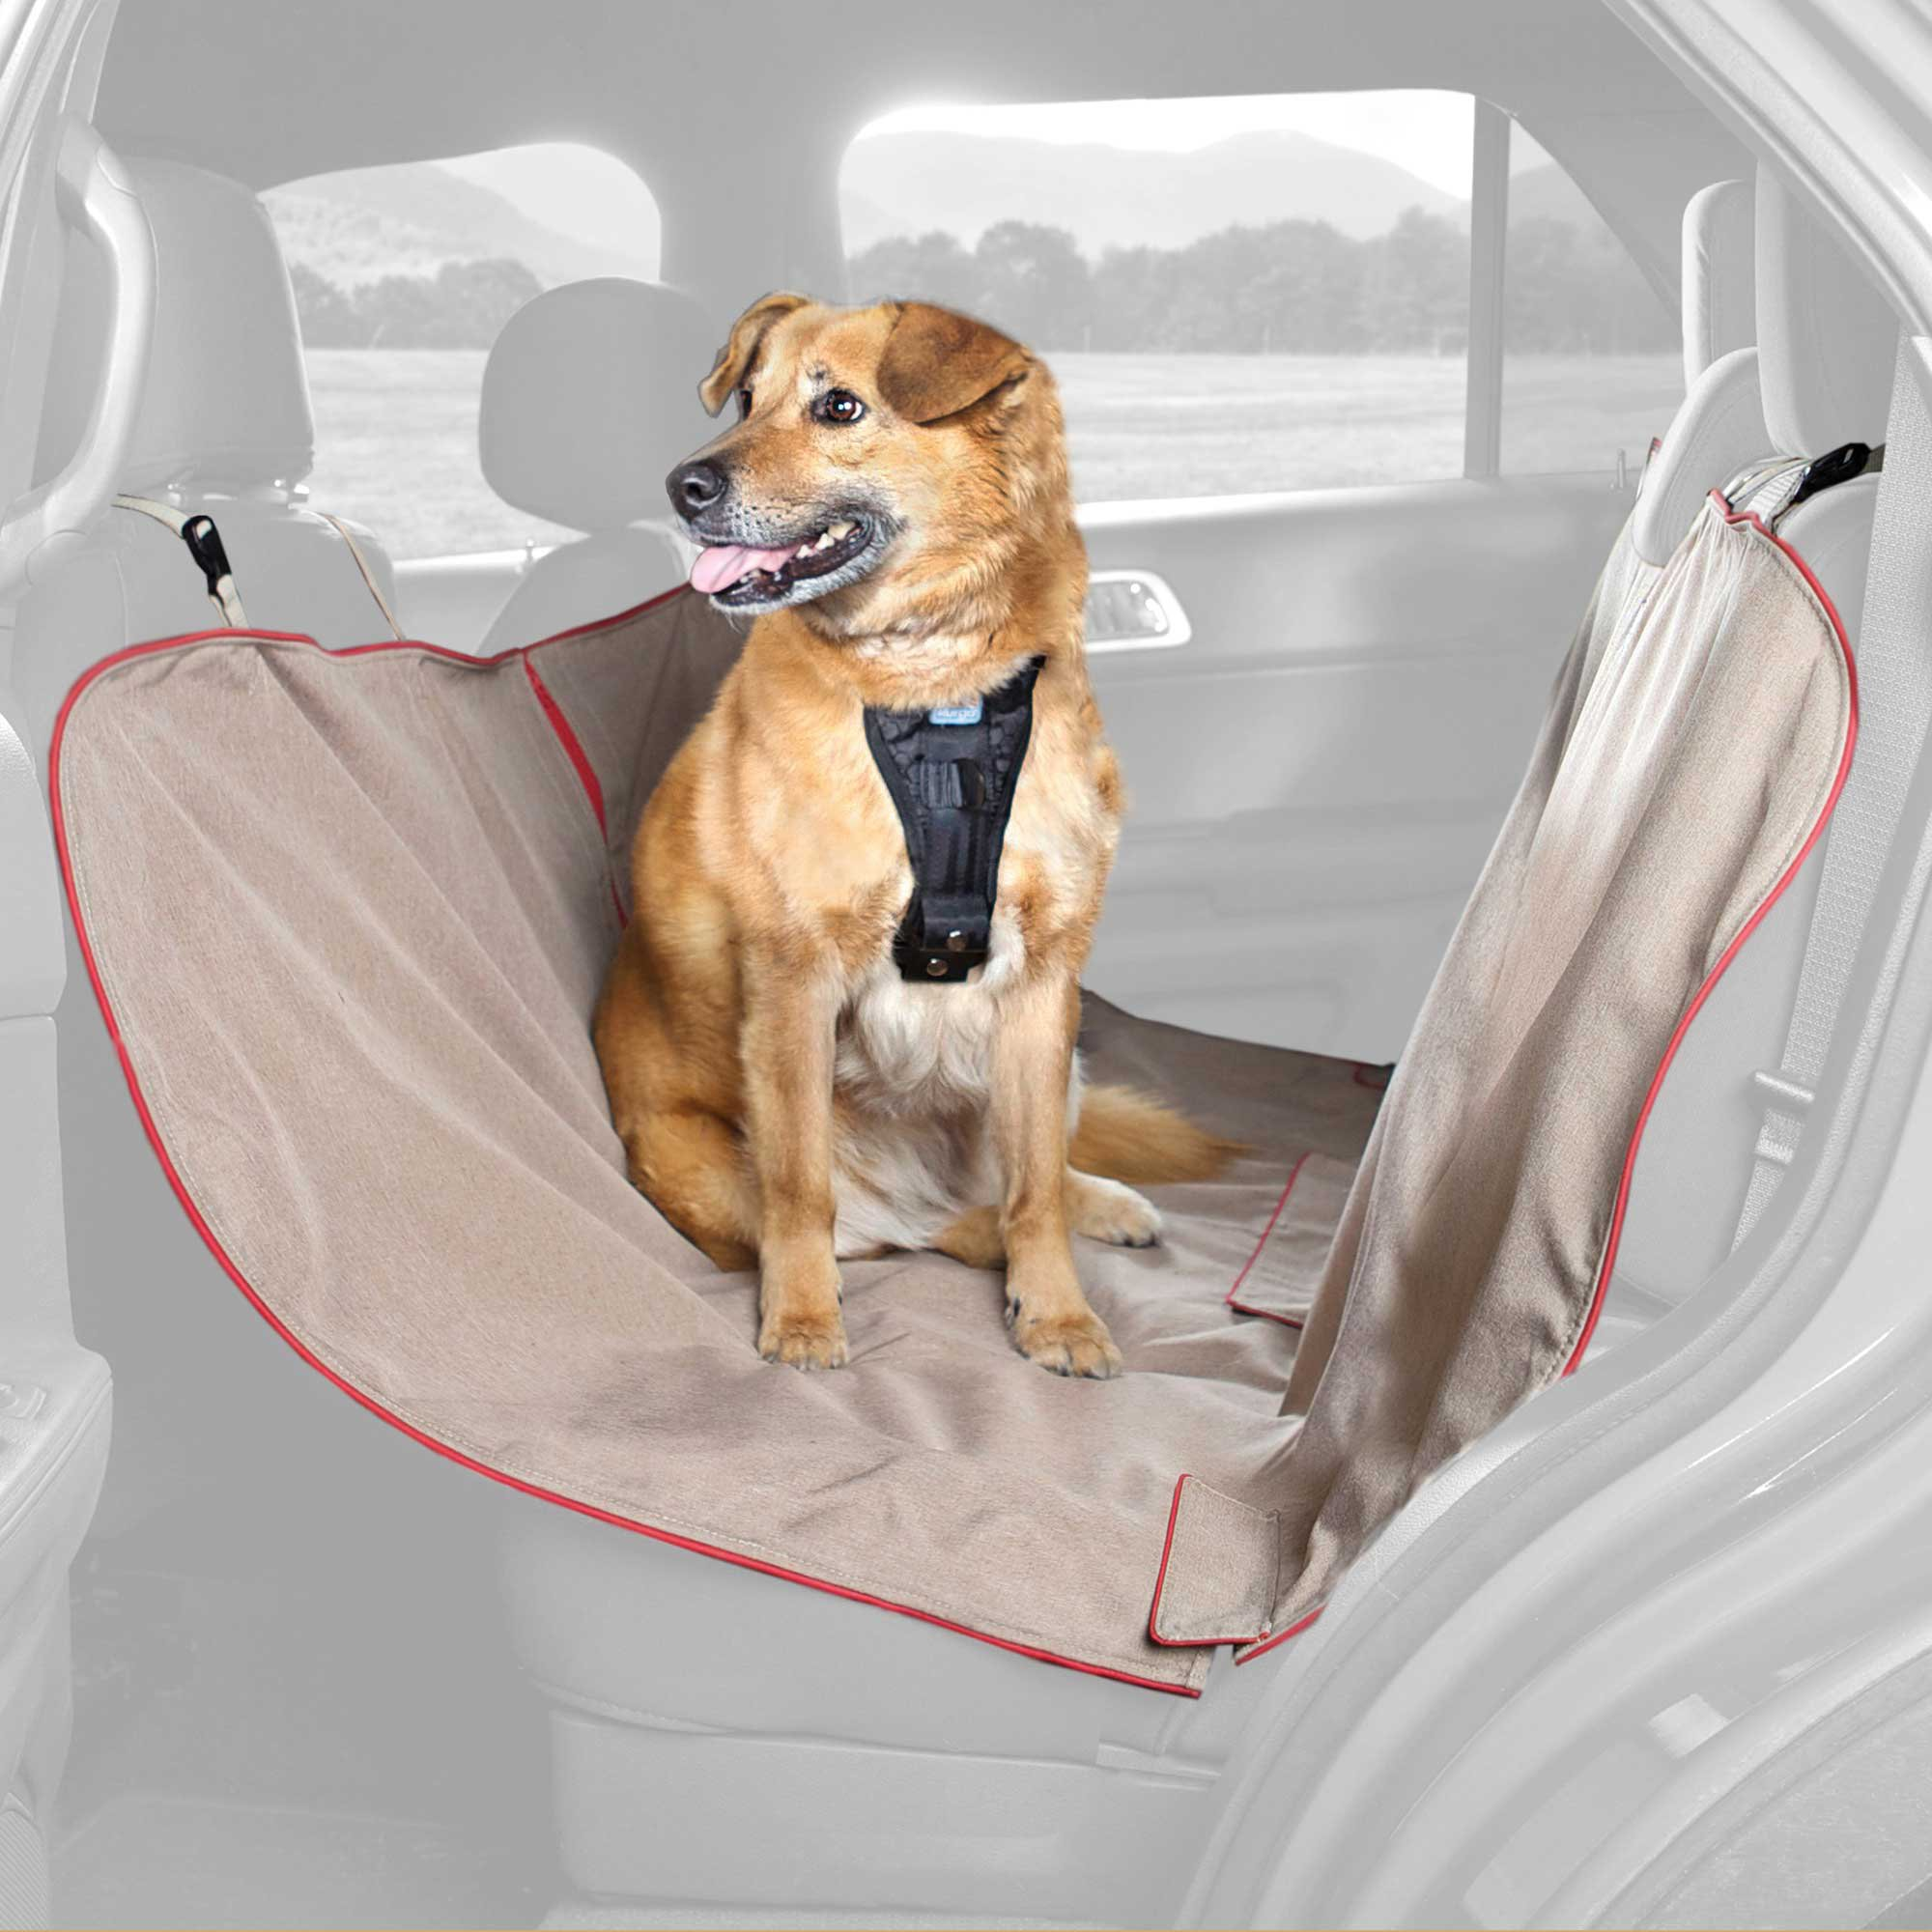 waterproof pet ultimate dog deluxe hammock cover seat protector pin non car